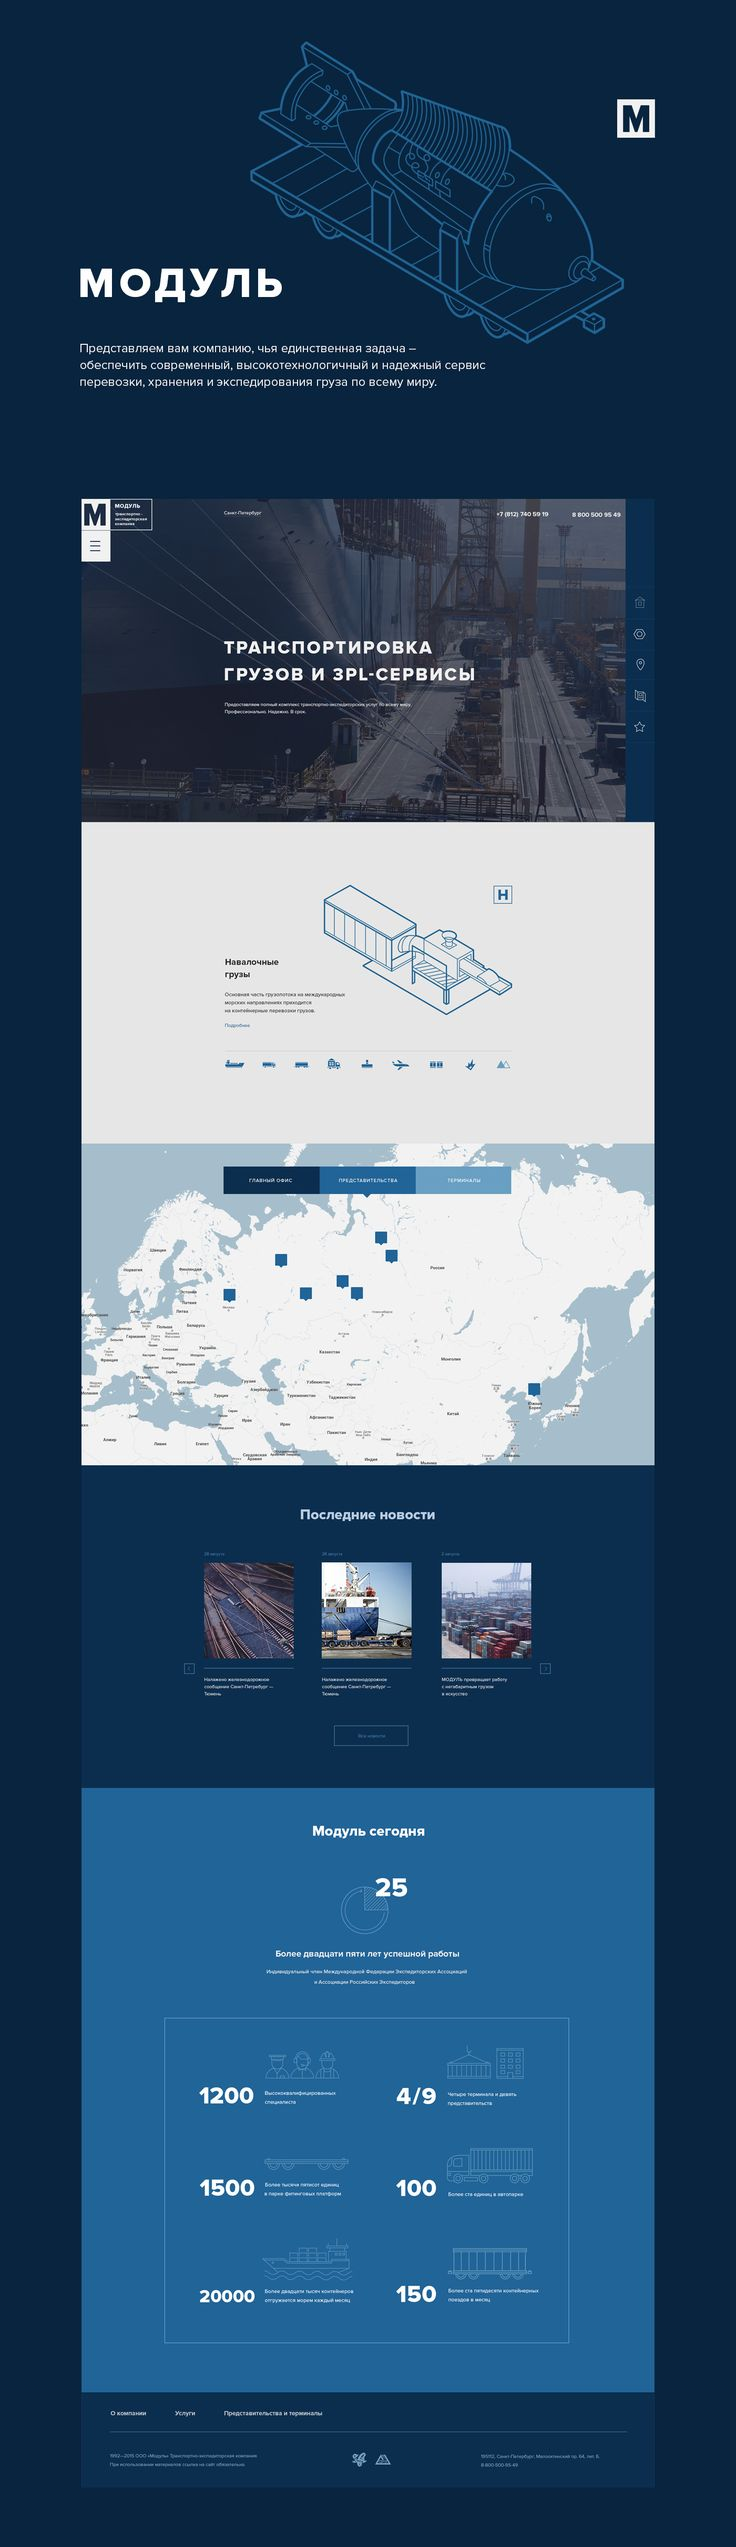 Modul Co. Ltd is one of leading freight forwarding companies in Russia with a number of branch offices located in Russia and South Korea.Due to a huge amount of services and branches it was difficult for users to find any information. So we created new w…